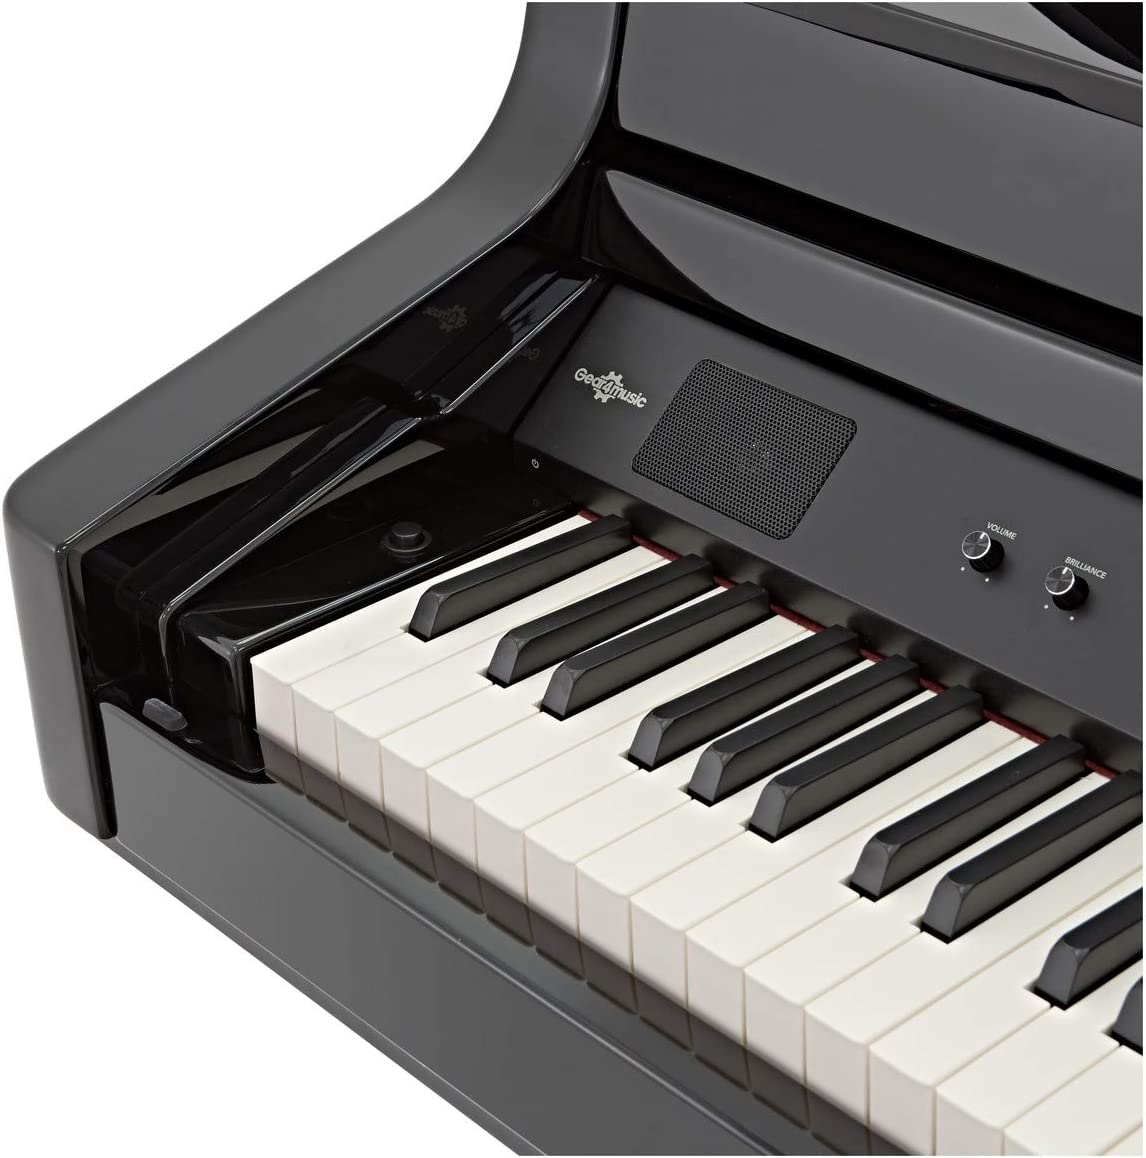 Gdp 500 Digital Grand Piano By Gear4music Amazon Co Uk Musical Instruments